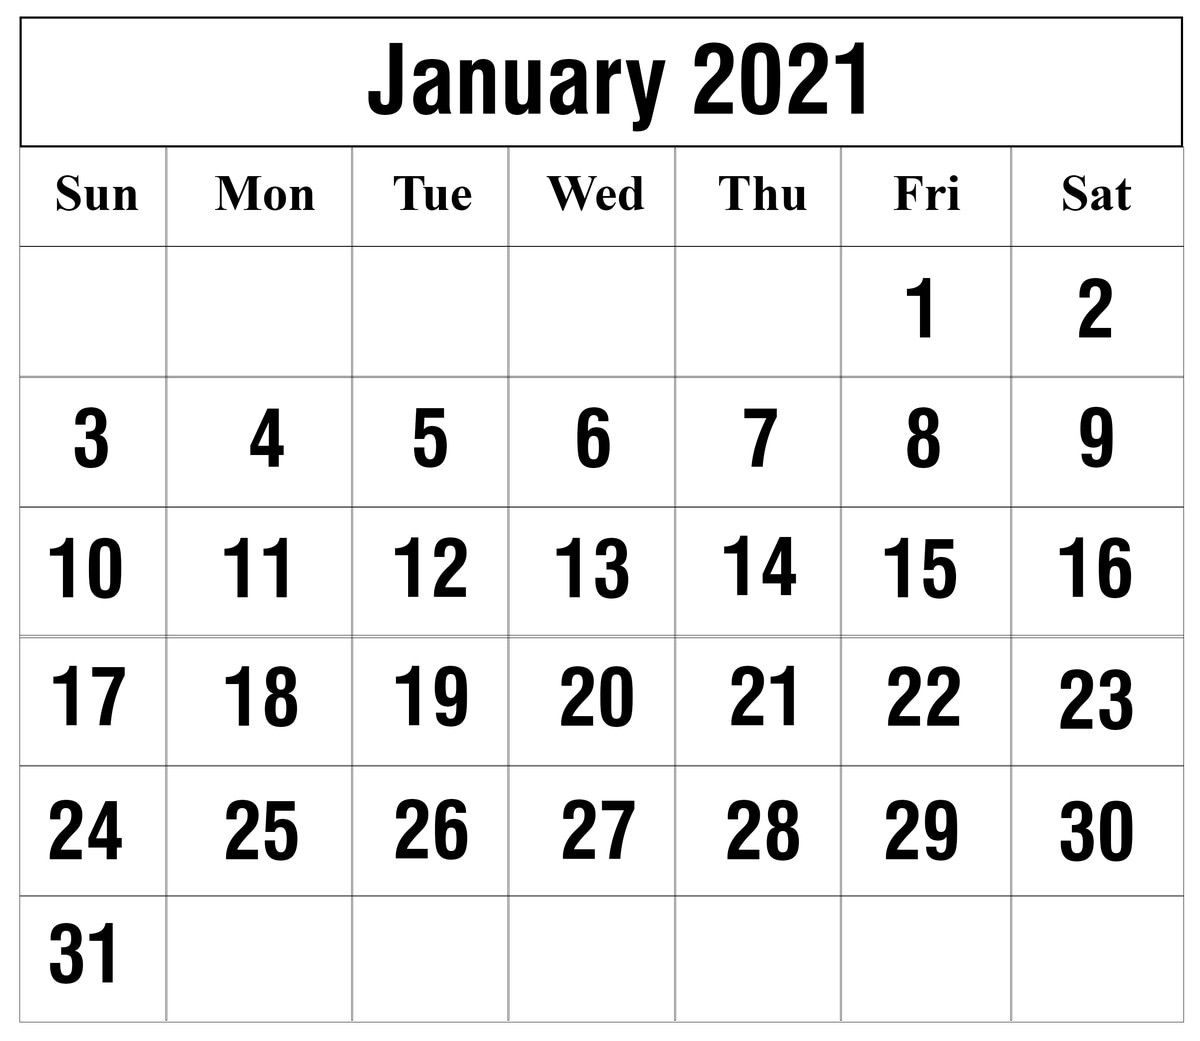 Calendar For January 2021 Project In 2020 | Monthly Calendar